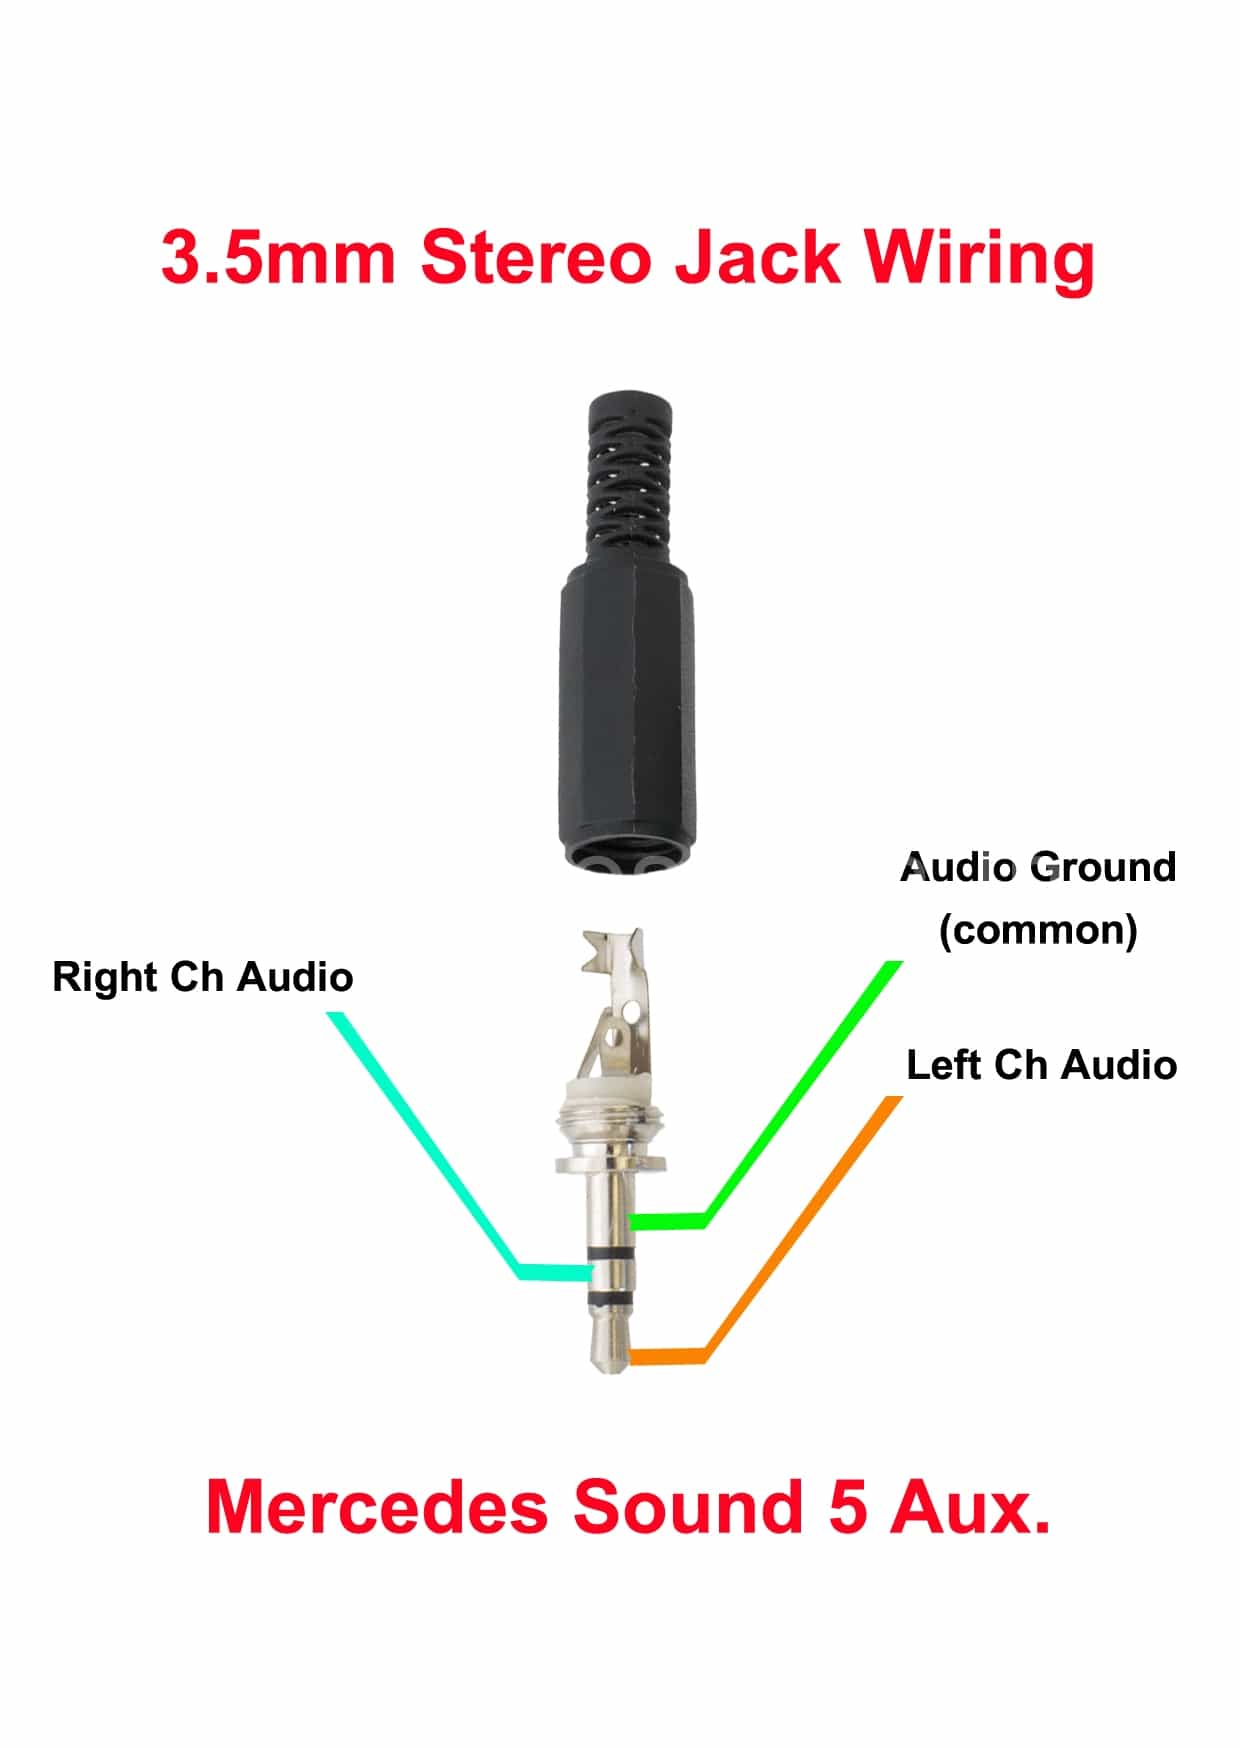 24299 3 5mm Jack Wiring Diagram | Digital Resources on 9mm diagram, rj45 diagram, firewire diagram, composite diagram, dvi diagram, rca diagram, 3 5 mm plug wire diagram, vga diagram, headphone jack wiring diagram, s-video diagram, 3 5 sterio jack diagram, 3 5 mm jack diagram,